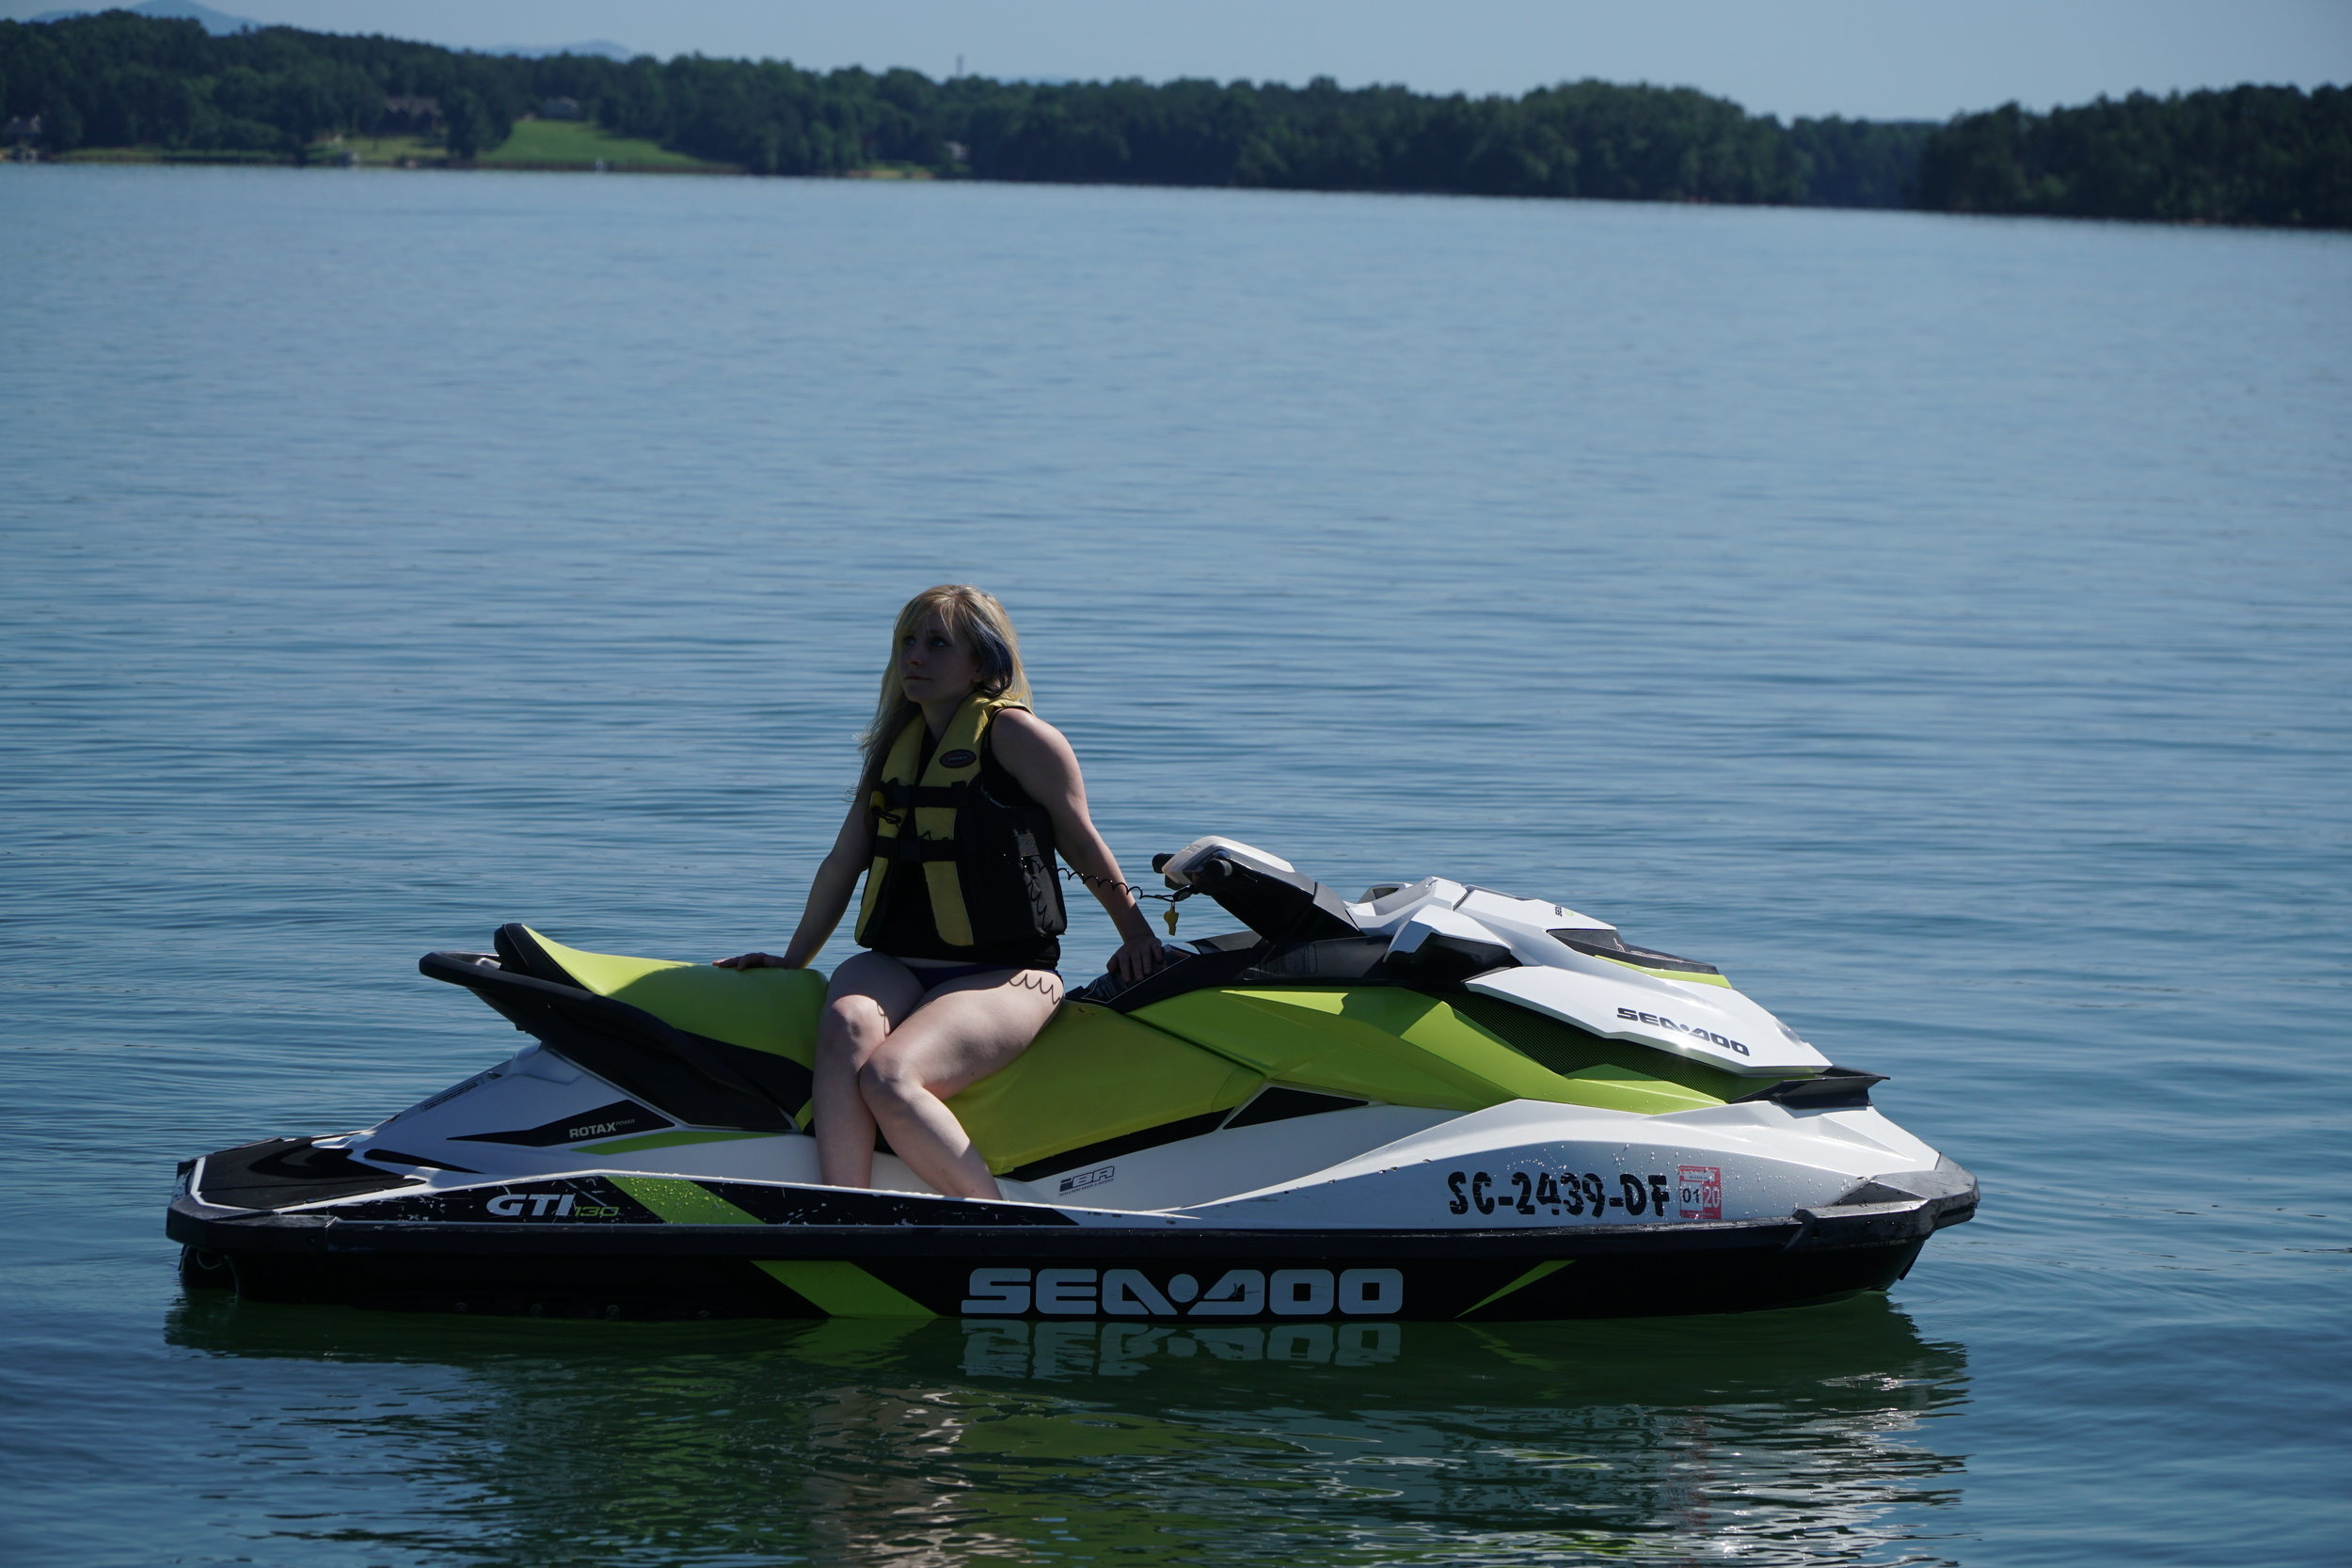 "Waverunners - • 2 hours - $175 + tax & gas• Half Day (4 hours) - $250 + tax & gas• Full day (7 Hours) - $350 + tax & gas• 1 Week (5-6 Full Days) - $1275 + tax & gasSave 20% on your order of 2 or more Waverunners with coupon code ""2Waves"" at checkout!"